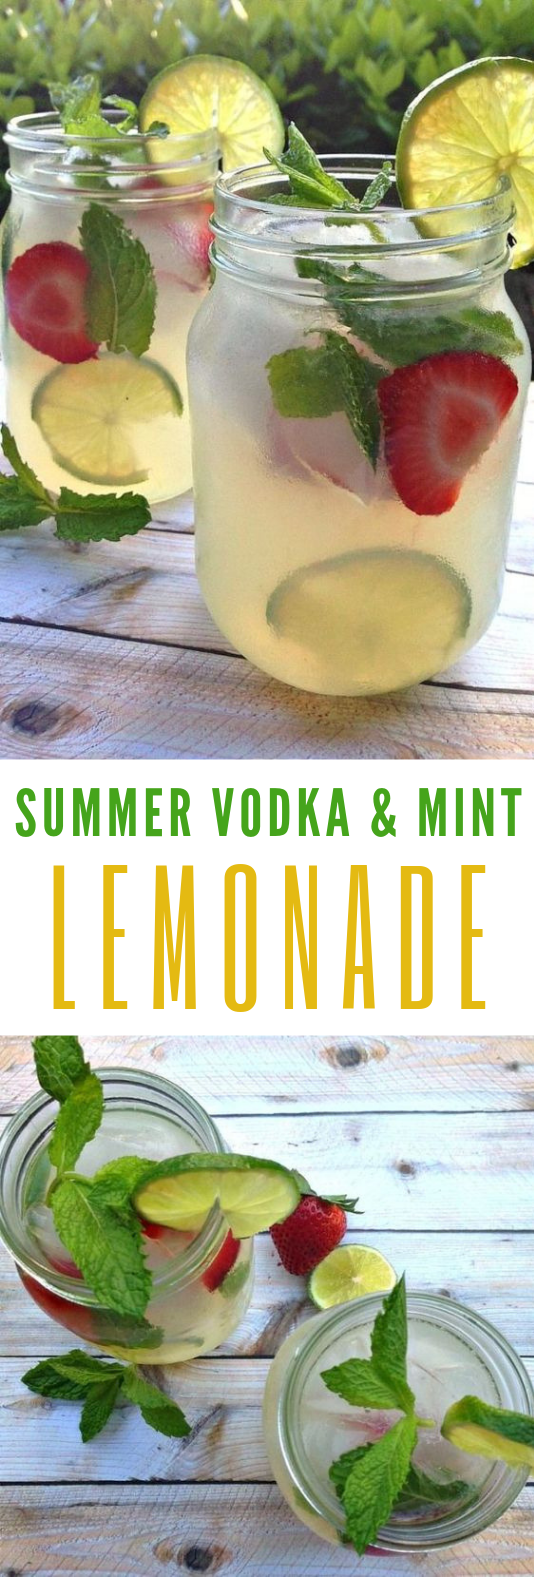 Refreshing Summer Drinks: Vodka Mint Lemonade Cocktail With Stoli #Cocktail #SummerDrinks #cocktails